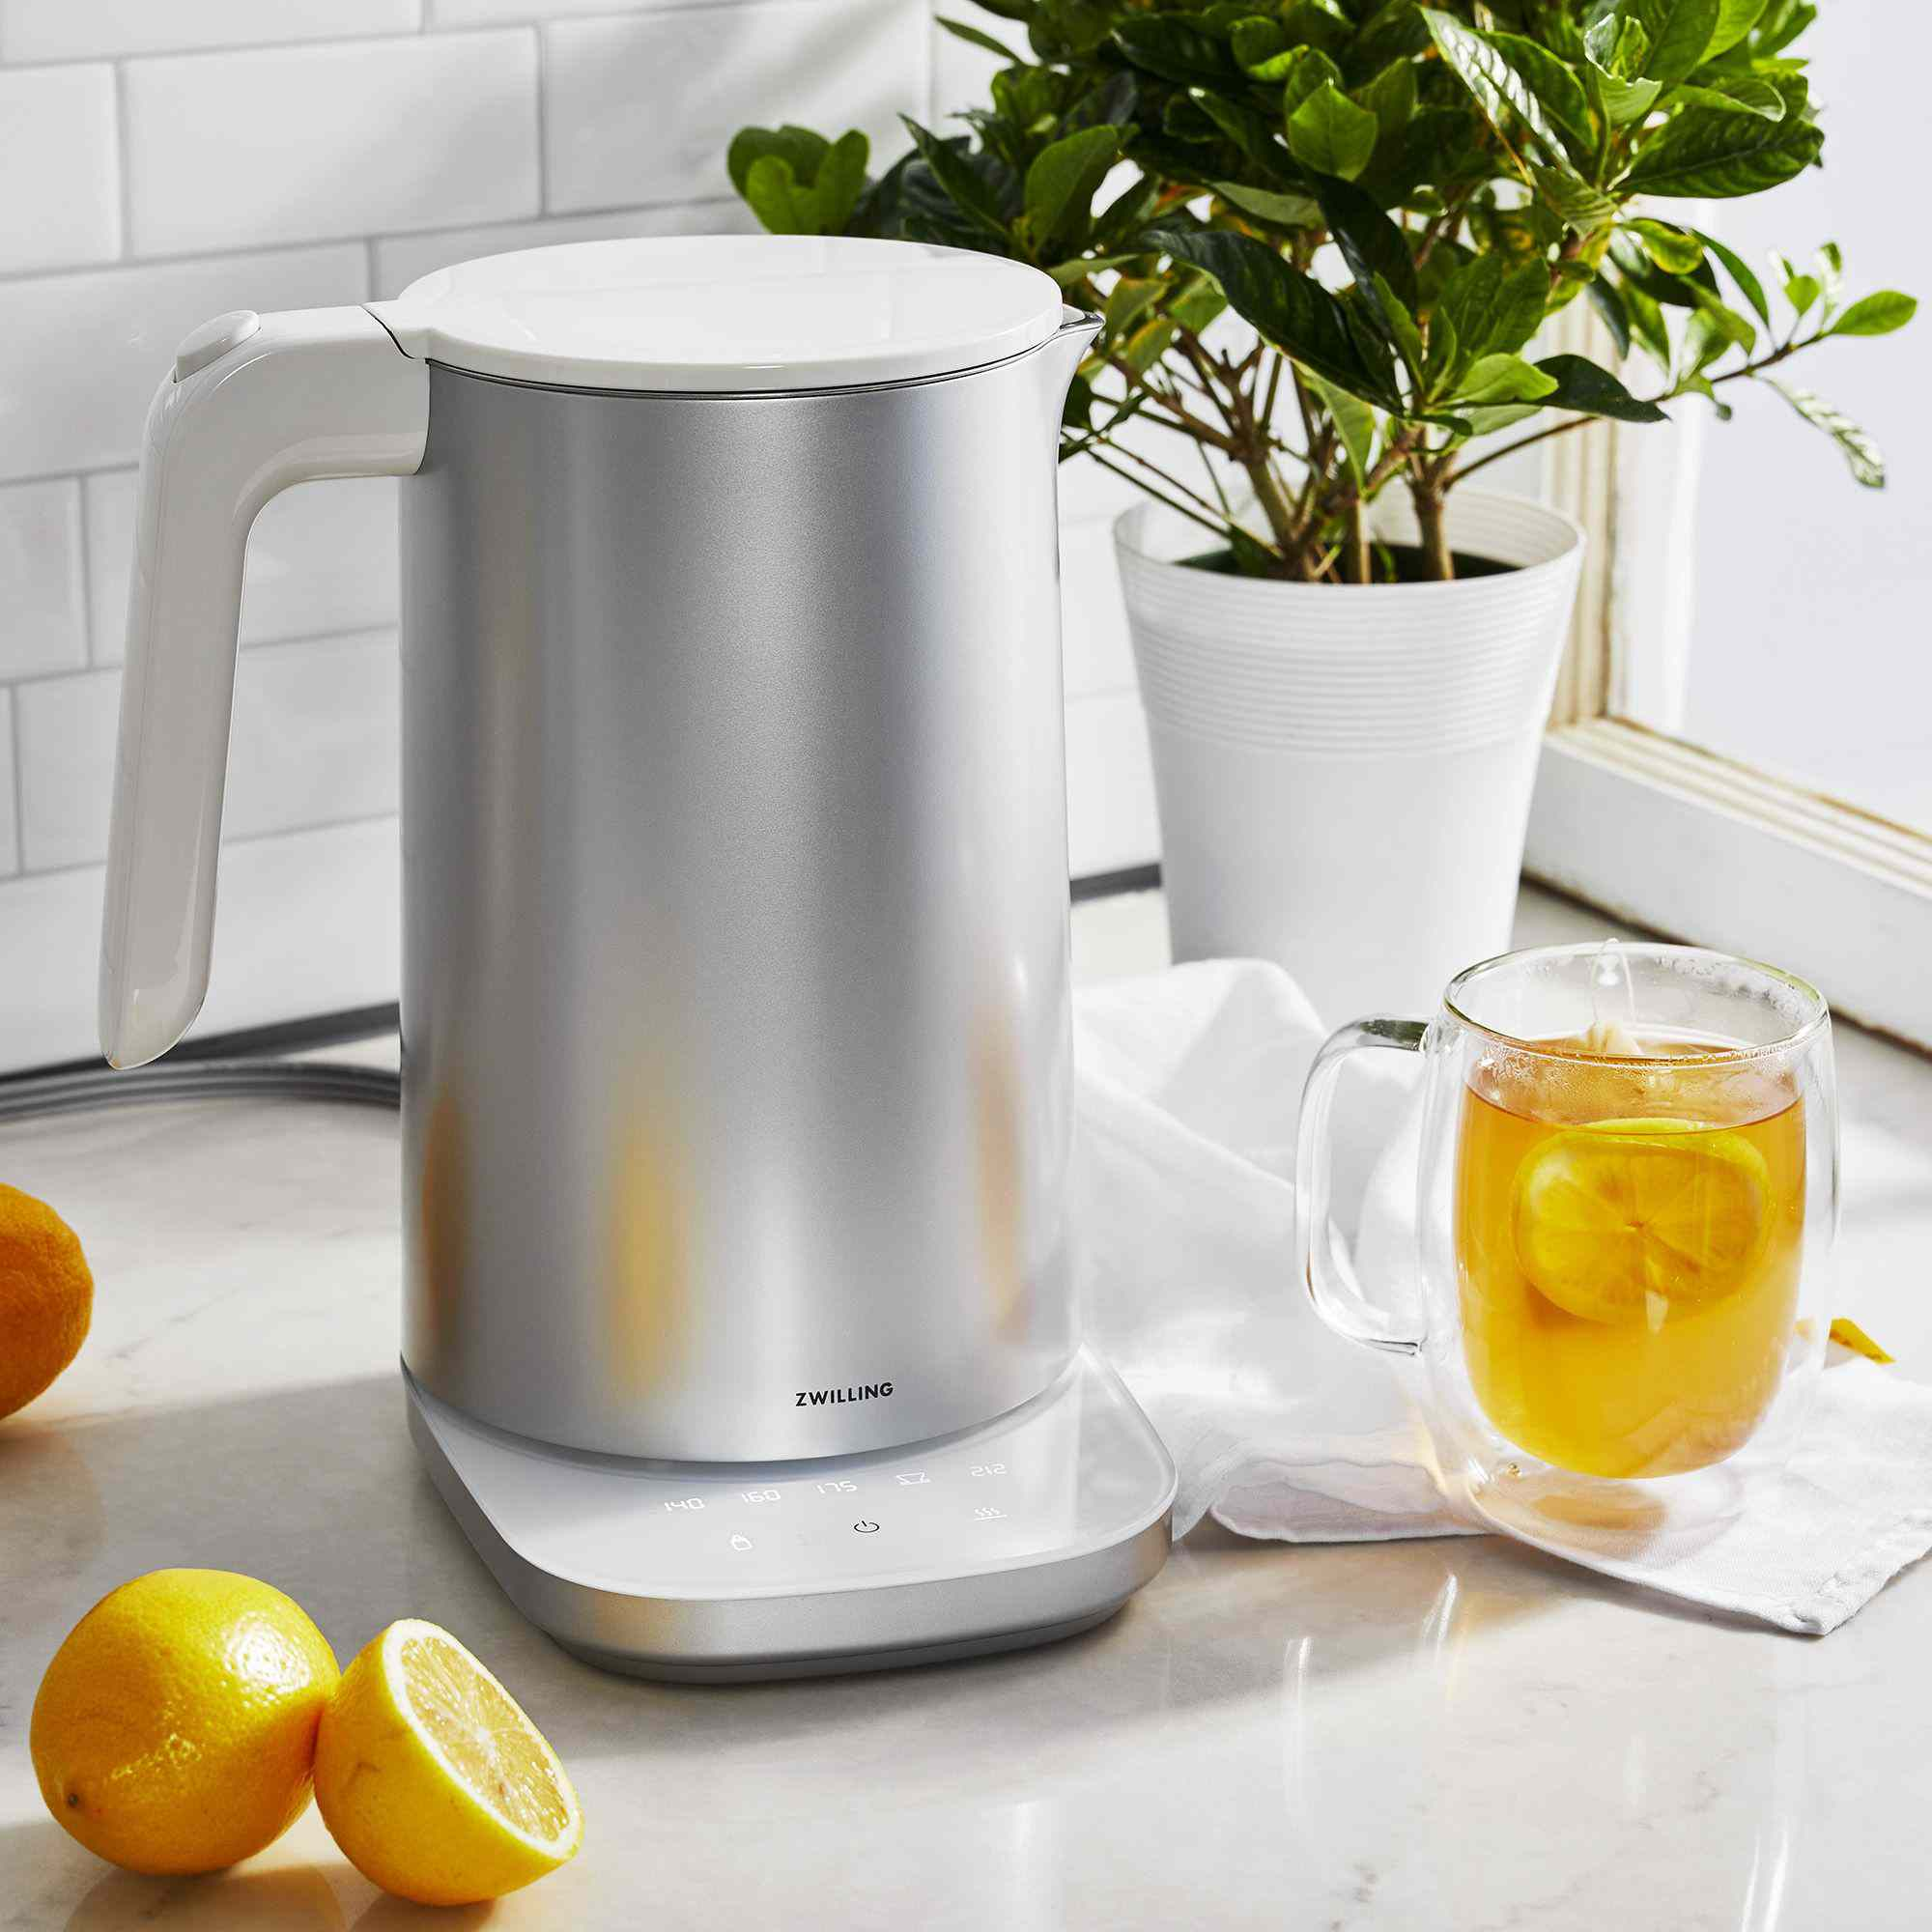 Zwilling Electric Kettle